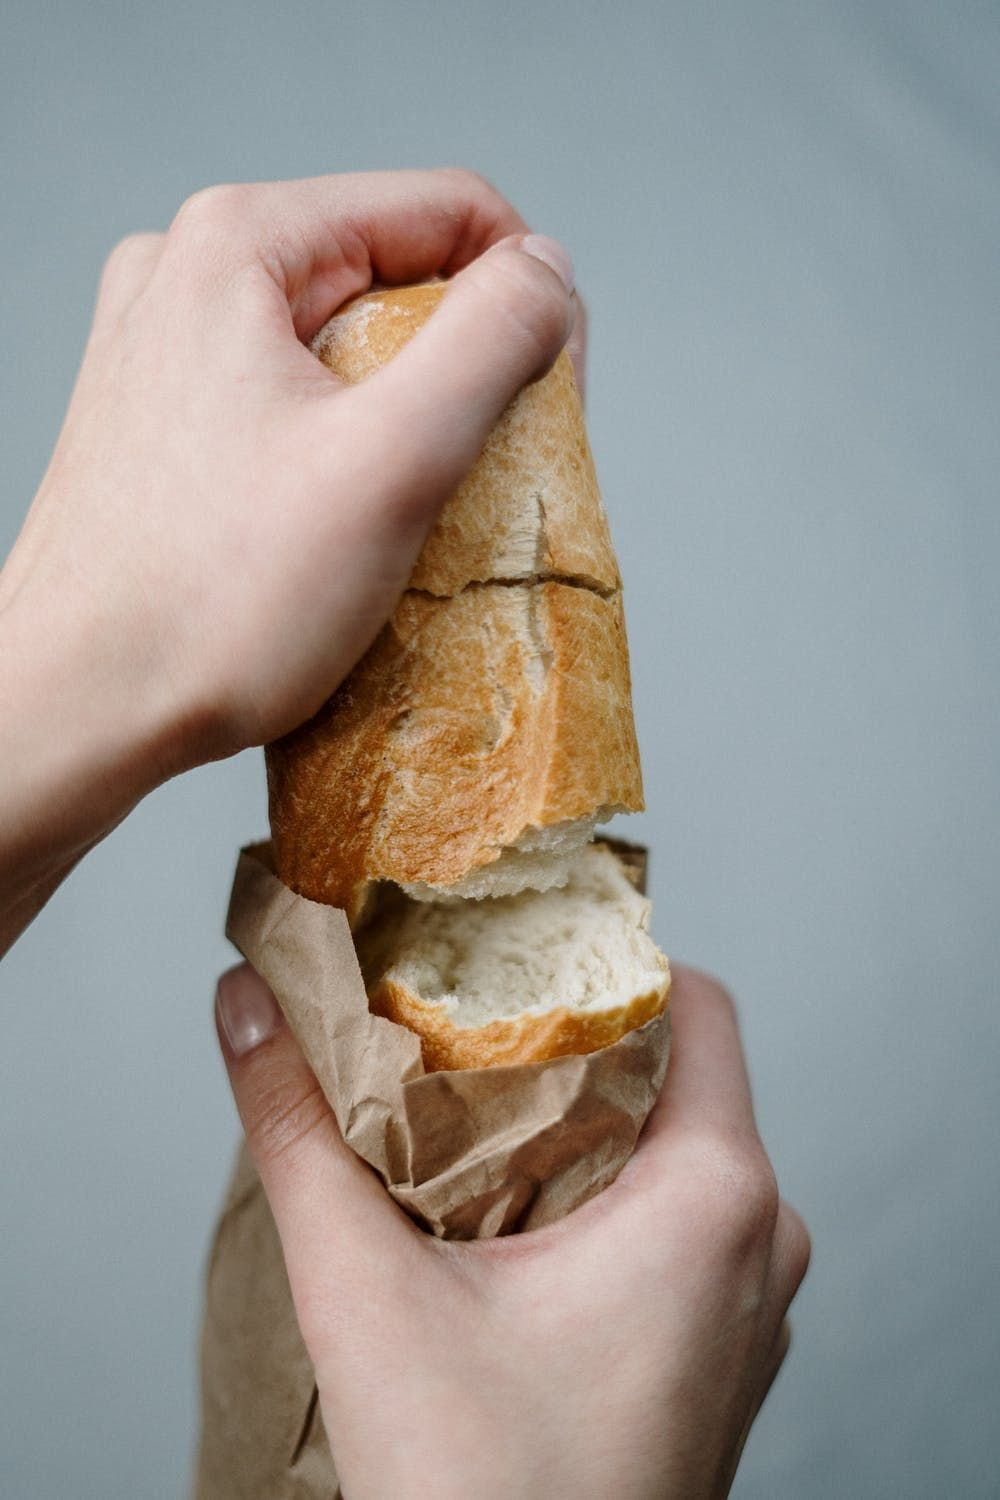 A person tearing apart a fresh loaf of bread